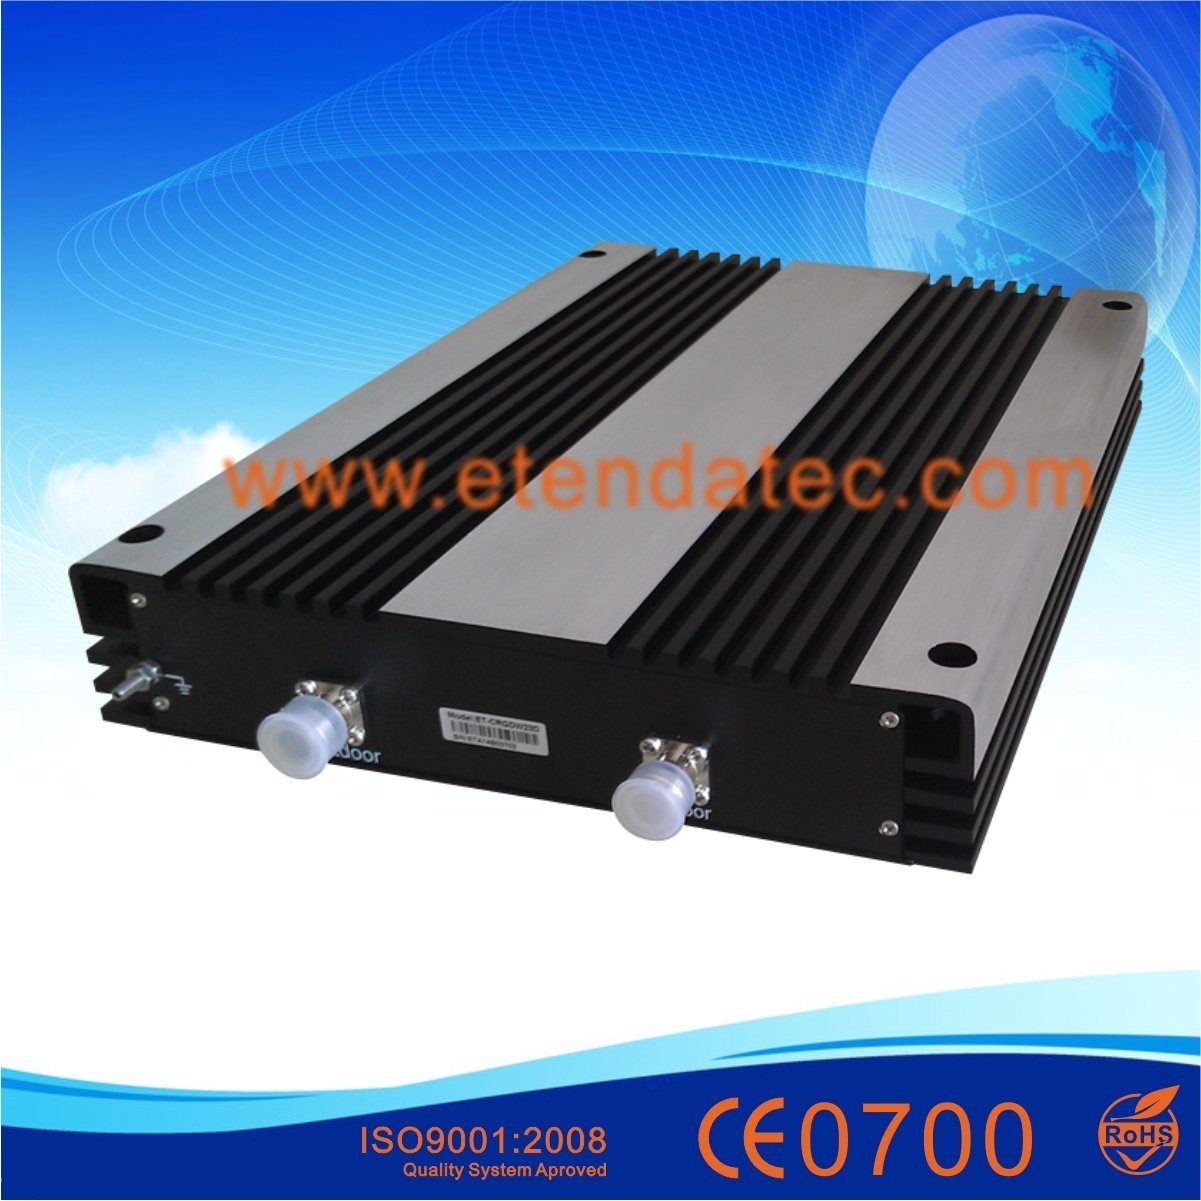 30dBm 85dB GSM/Dcs/WCDMA 2g 3G Mobile Signal Repeater